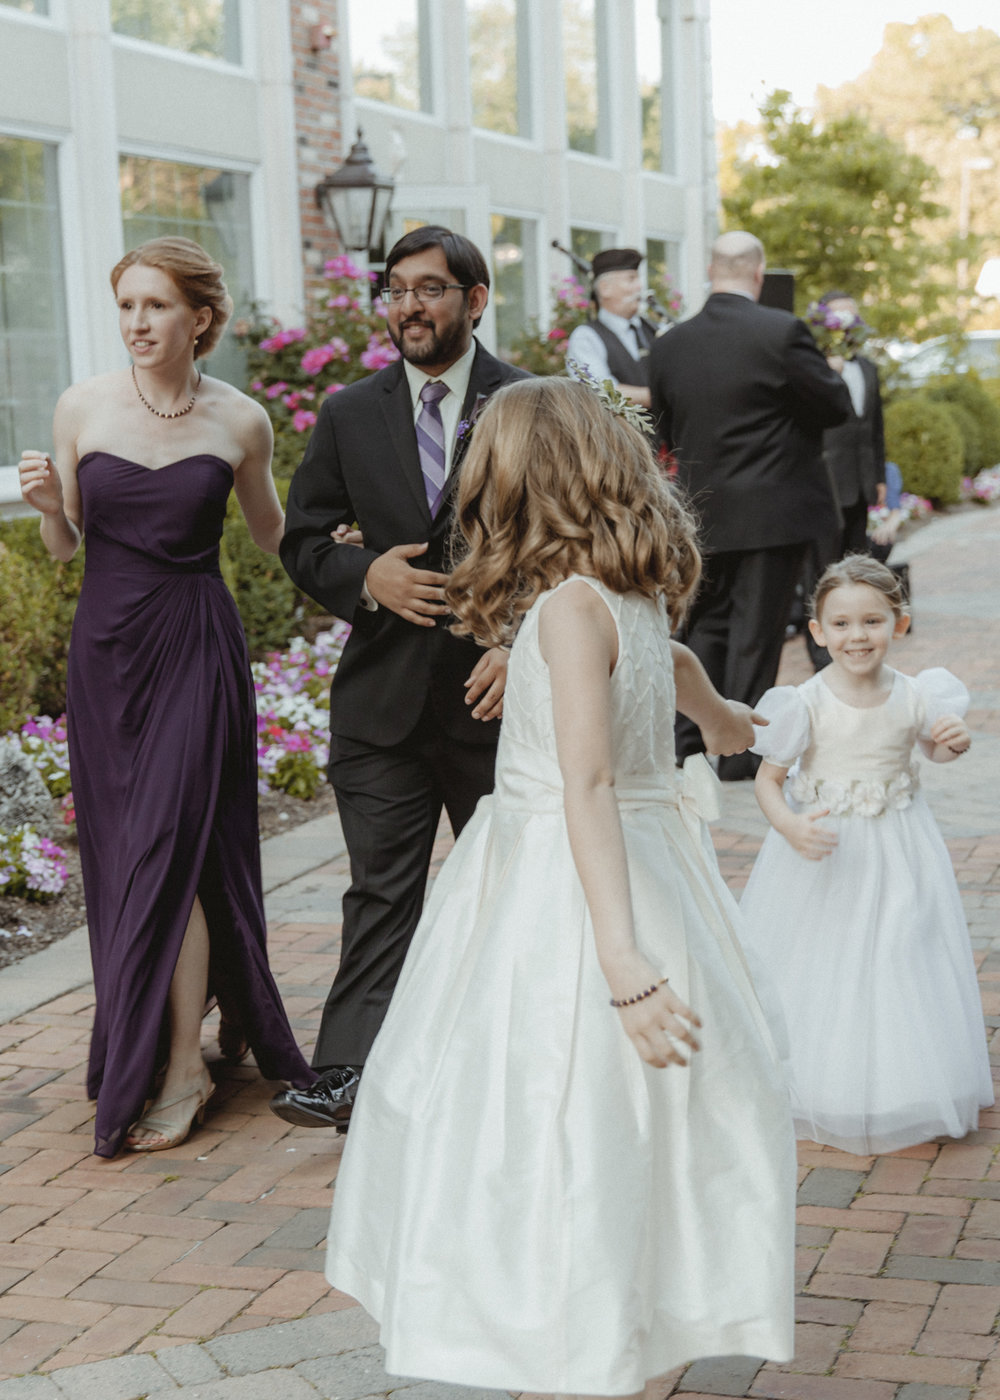 Flowergirls play together - Estate at Florentine Gardens wedding - Hudson Valley Wedding - Kelsey & Anish's wedding - Amy Sims Photography